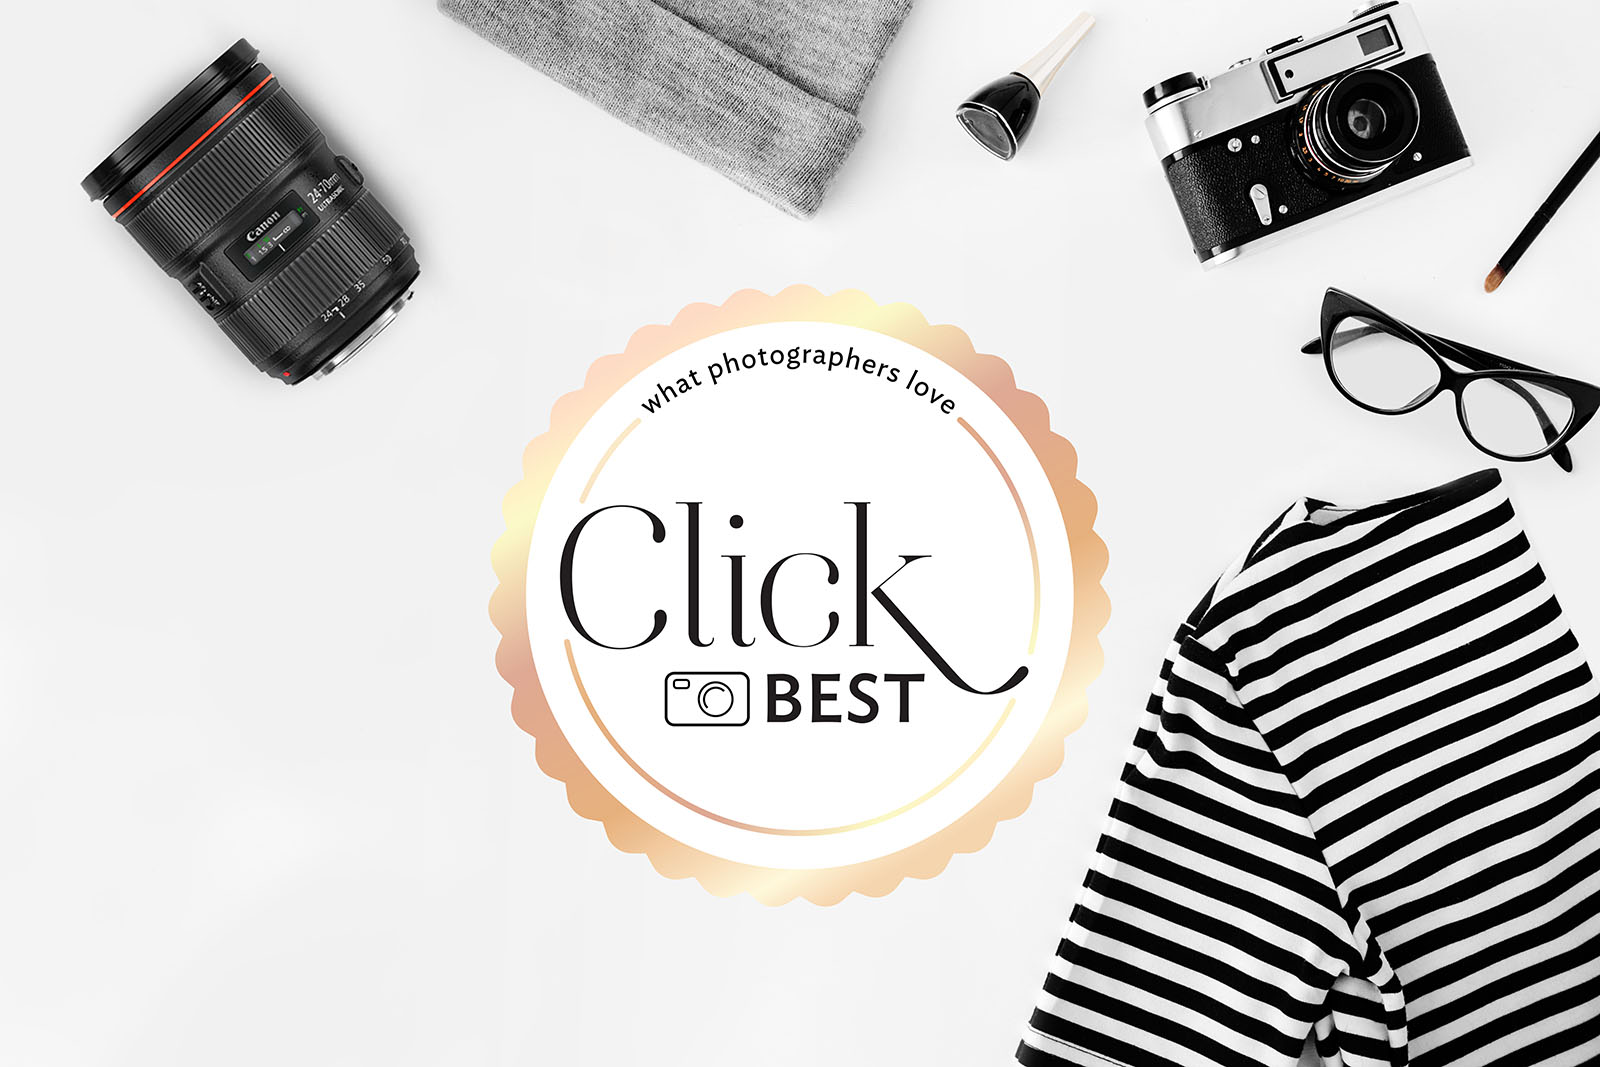 Click Magazine's best photography products of 2018